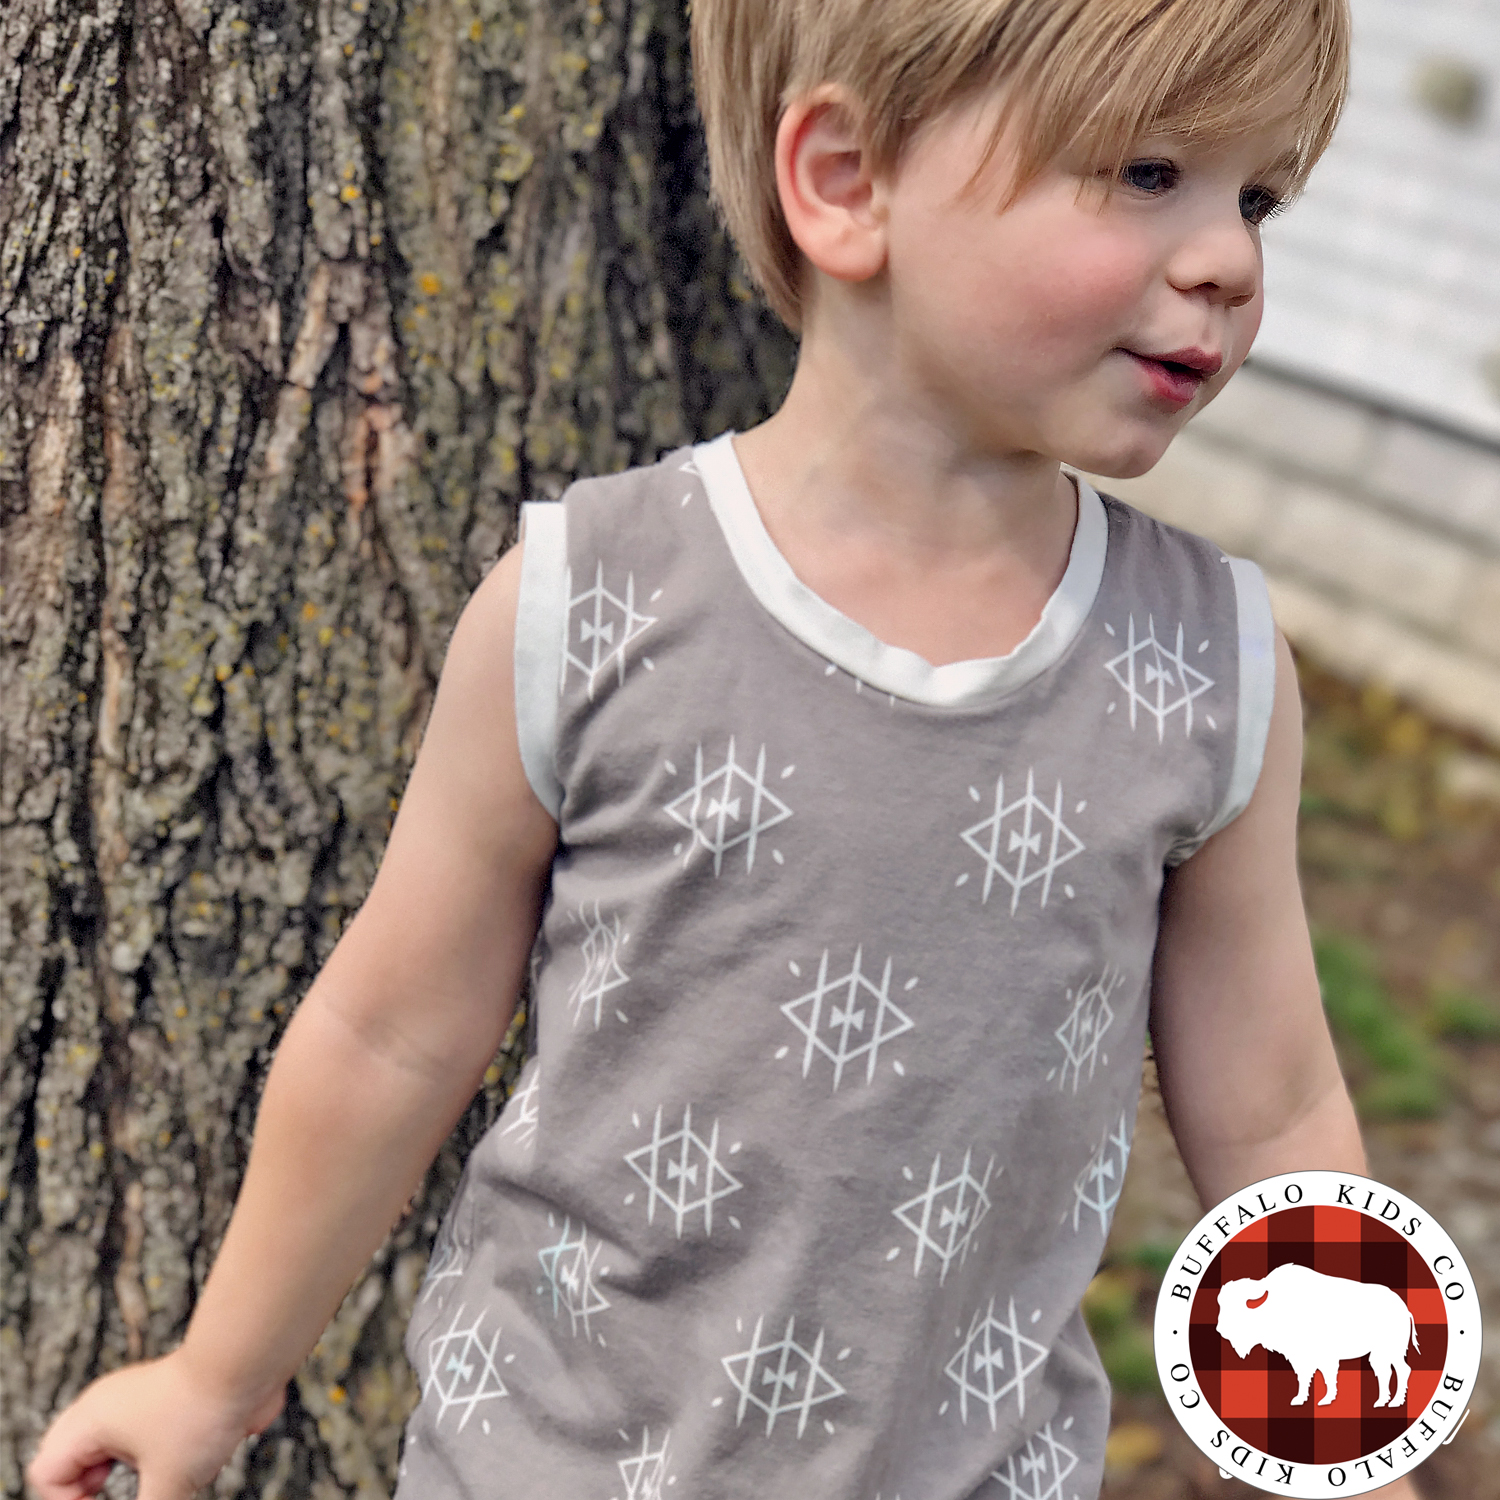 Ojos Snap Free Romper for Kids. Fall Romper. Modern Children's Clothing. Handmade One Piece for Children.